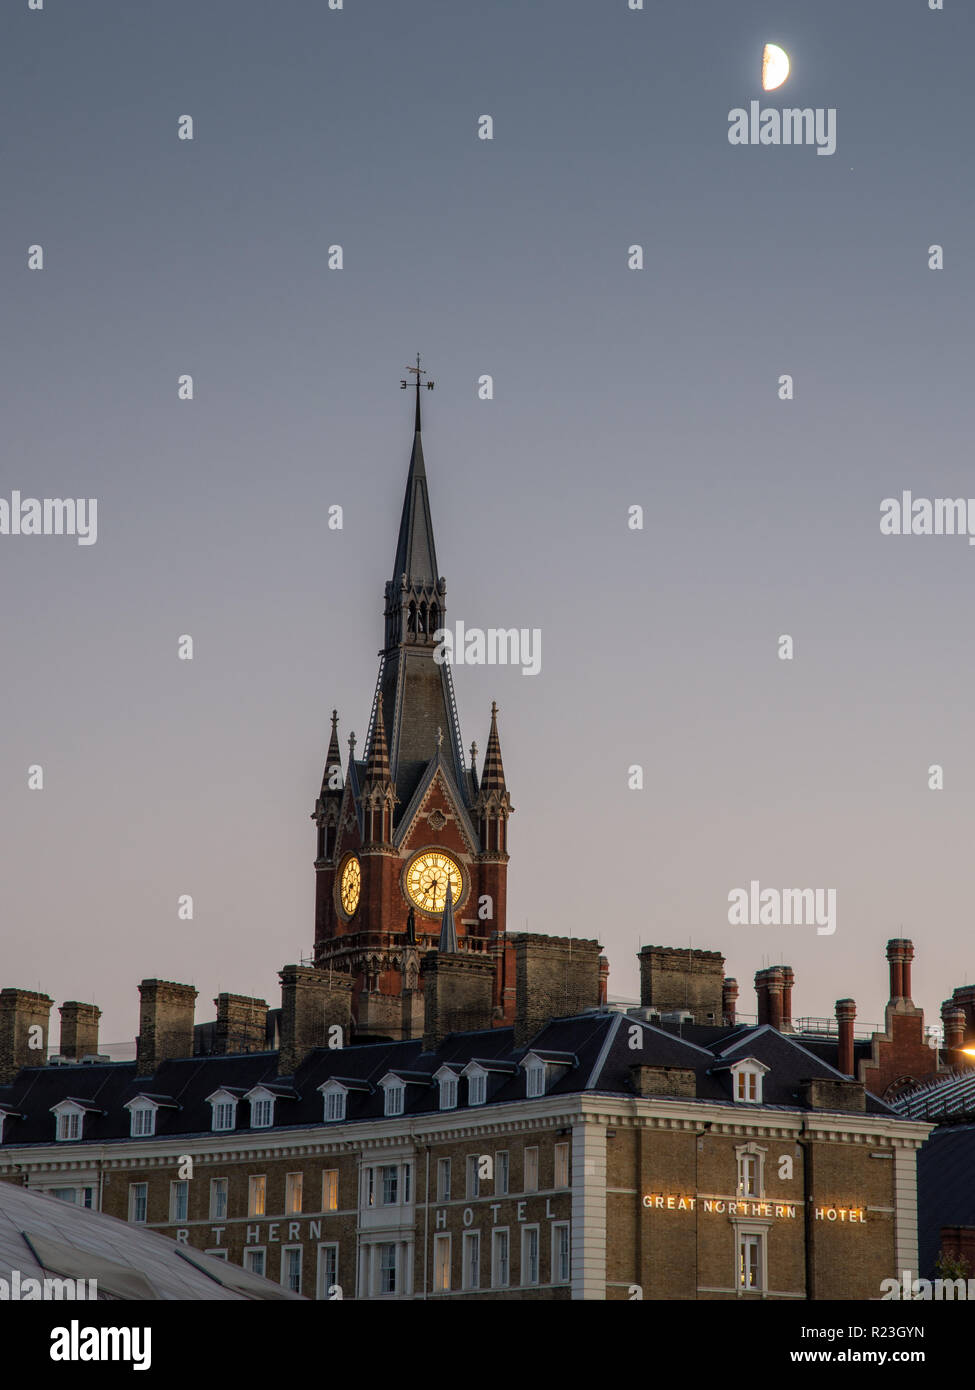 London, England, UK - September 17, 2018: A half moon rises above the gothic spire of St Pancras International Railway Station and Great Northern Hote Stock Photo